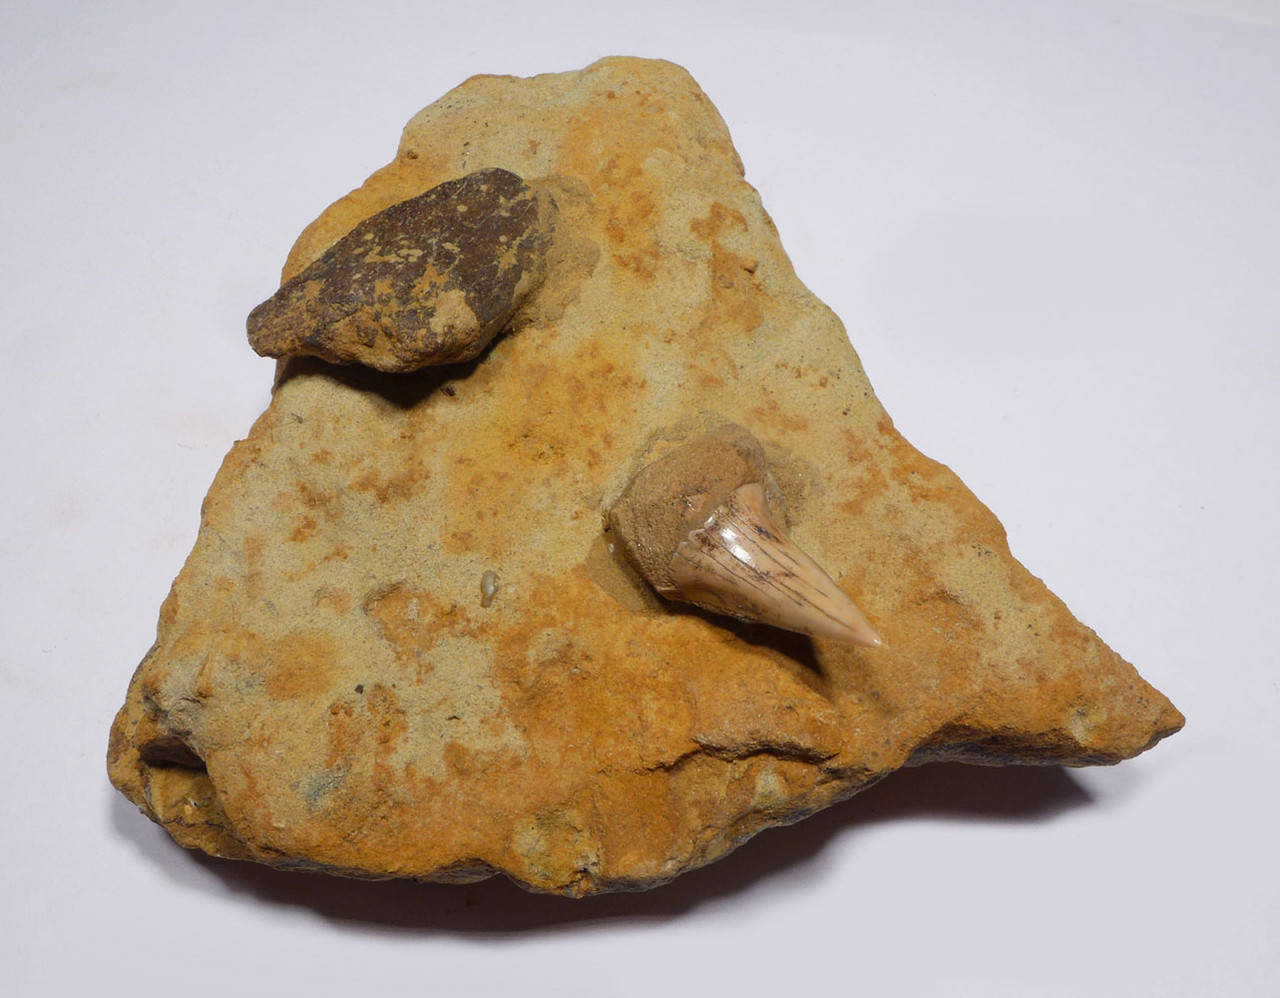 SHARKTOOTH HILL FOSSIL MAKO SHARK TOOTH HASTALIS WITH BONE IN SANDSTONE FROM CALIFORNIA  *STH030